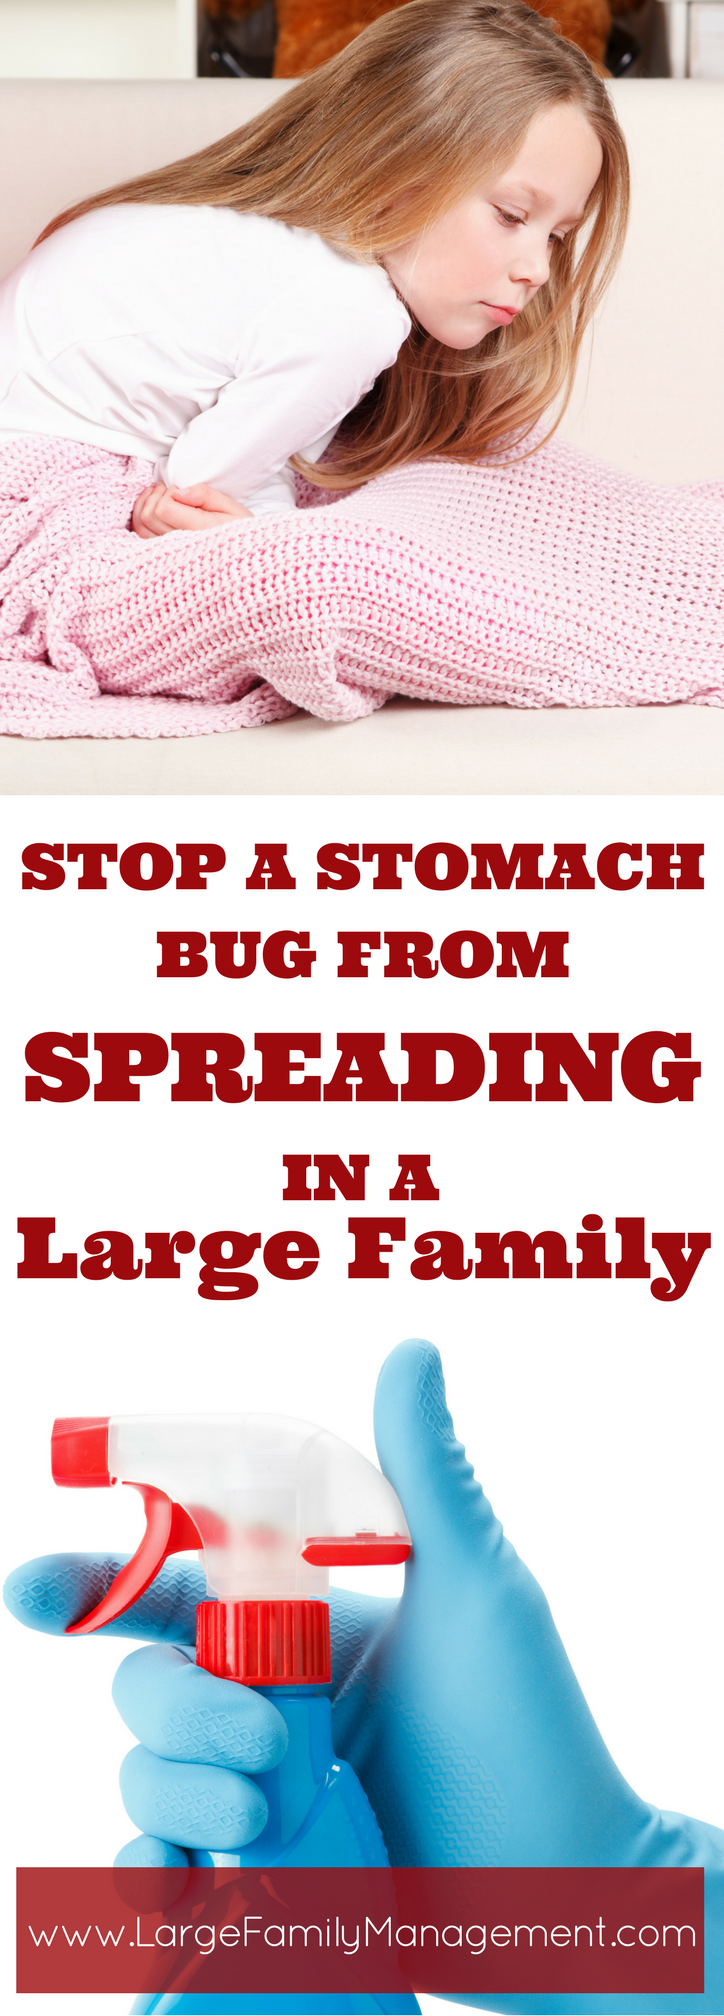 How to keep a stomach bug from spreading in a large family. This mom knows from experience!